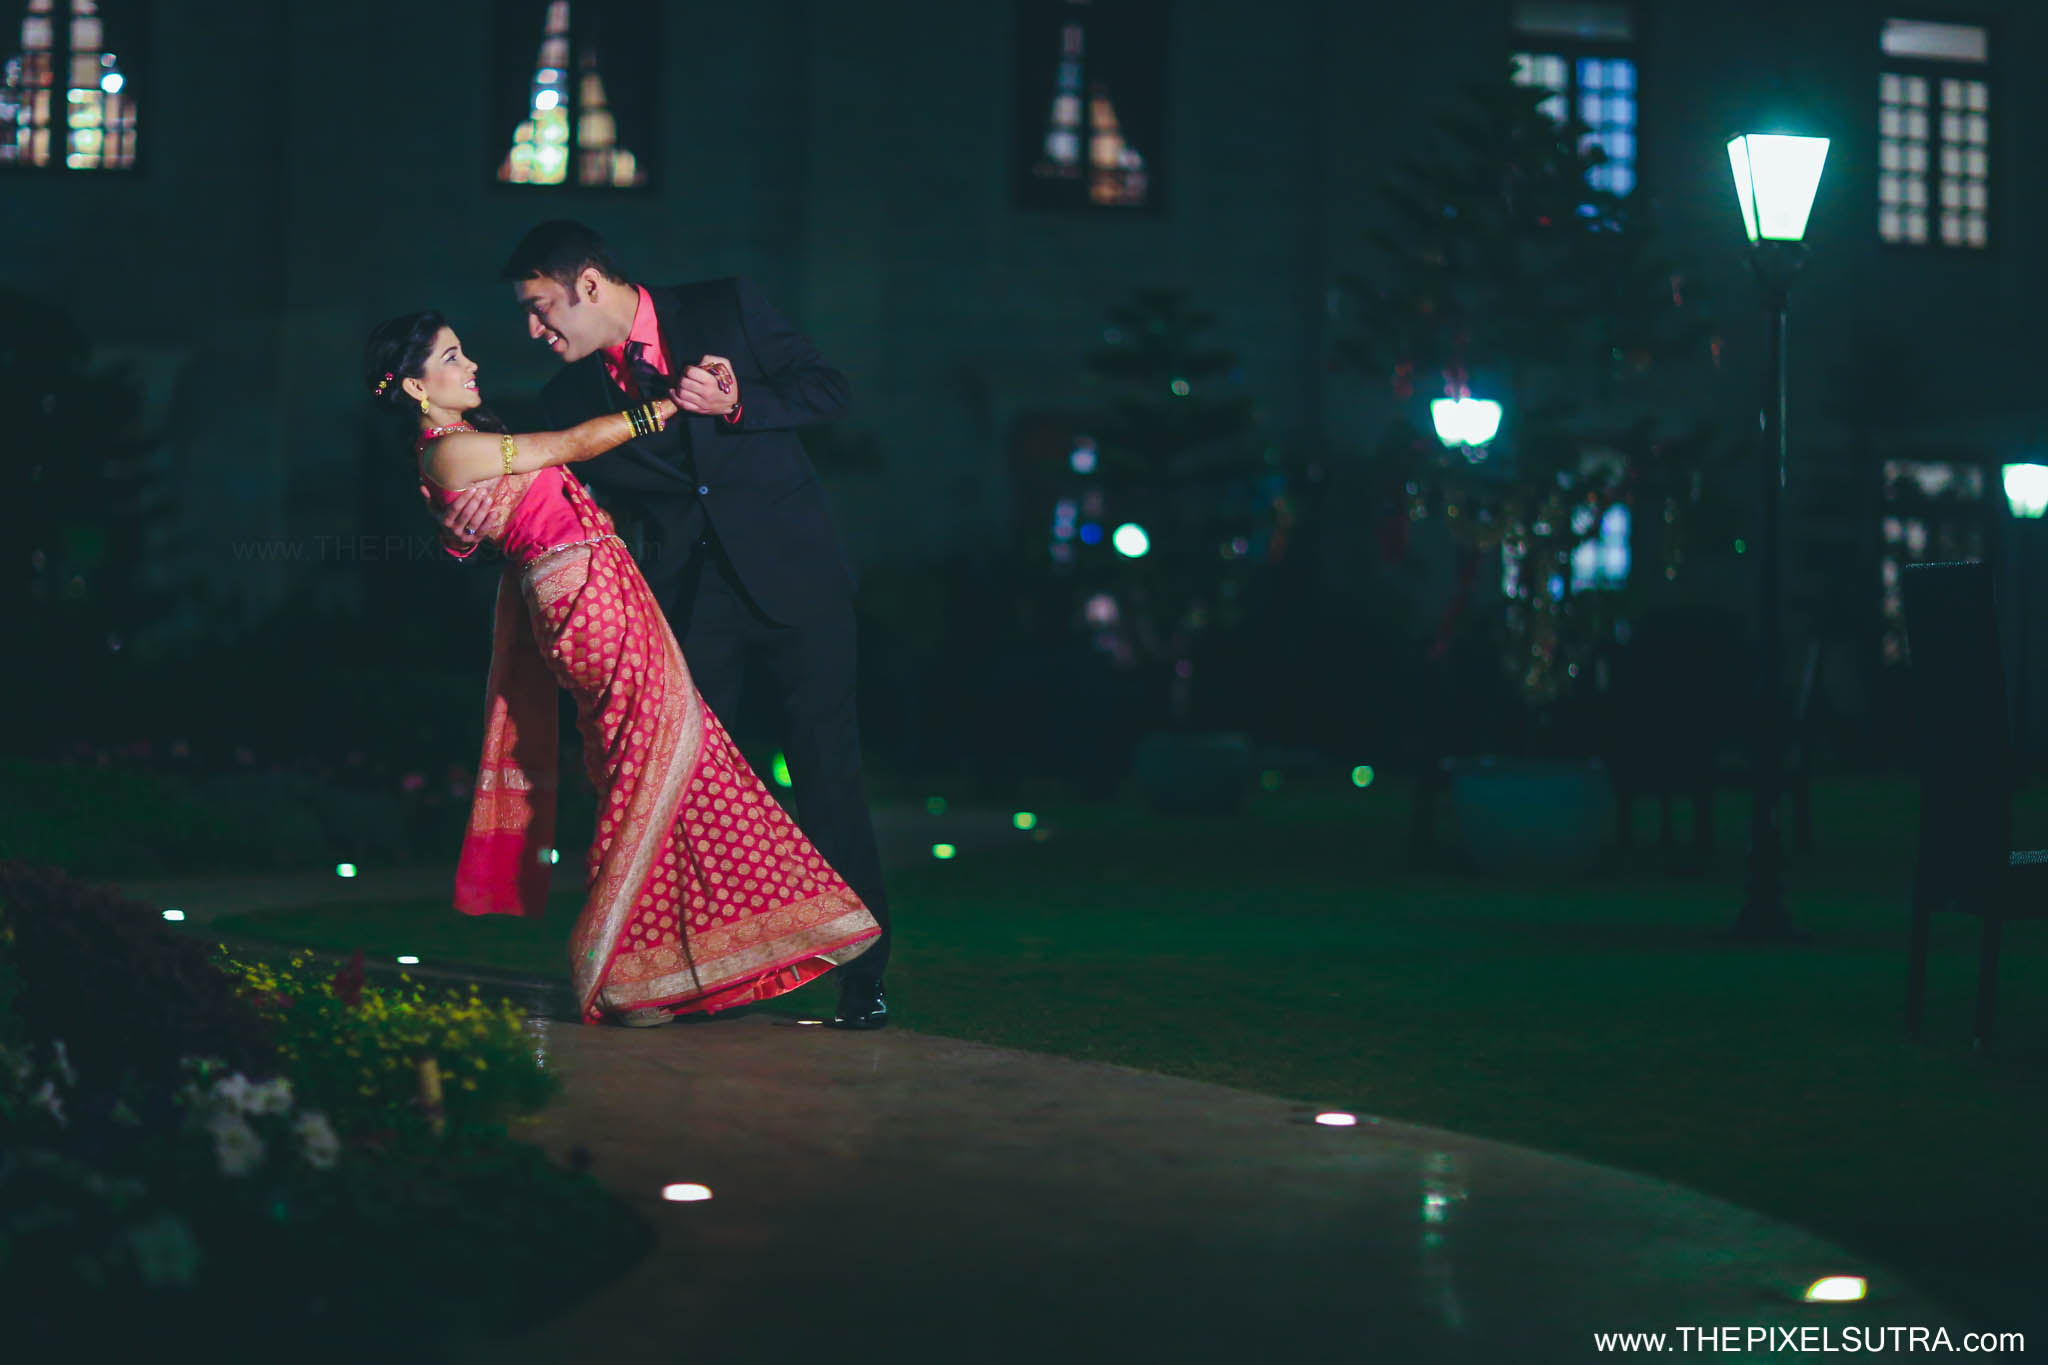 The Pixel Sutra Nachiket x Priyanka Candid Wedding photographer Mumbai Best  (59).jpg